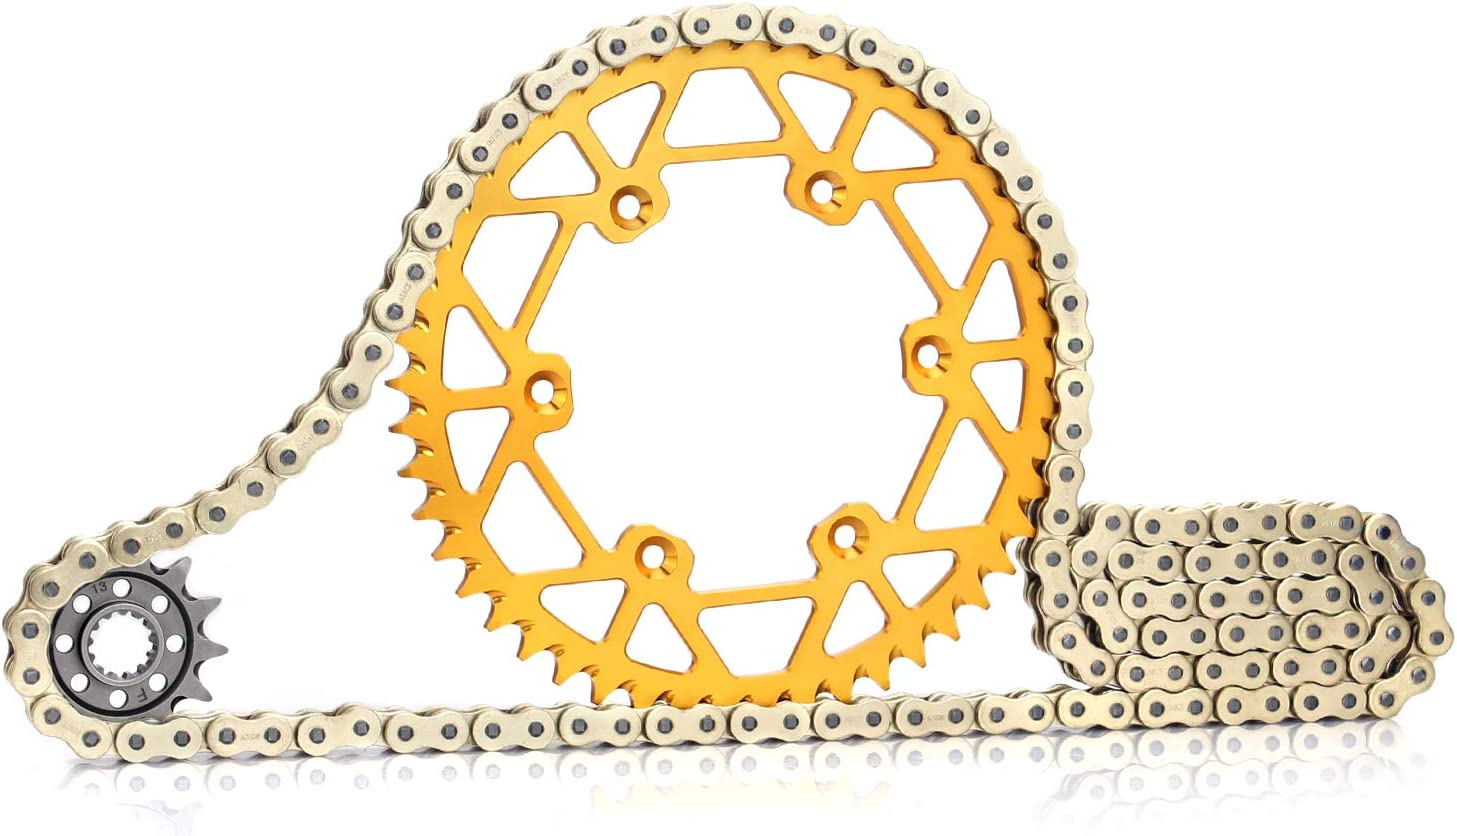 Drive Train Automotive Smadmoto 520-120L X-Ring and Sprockets 13 ...